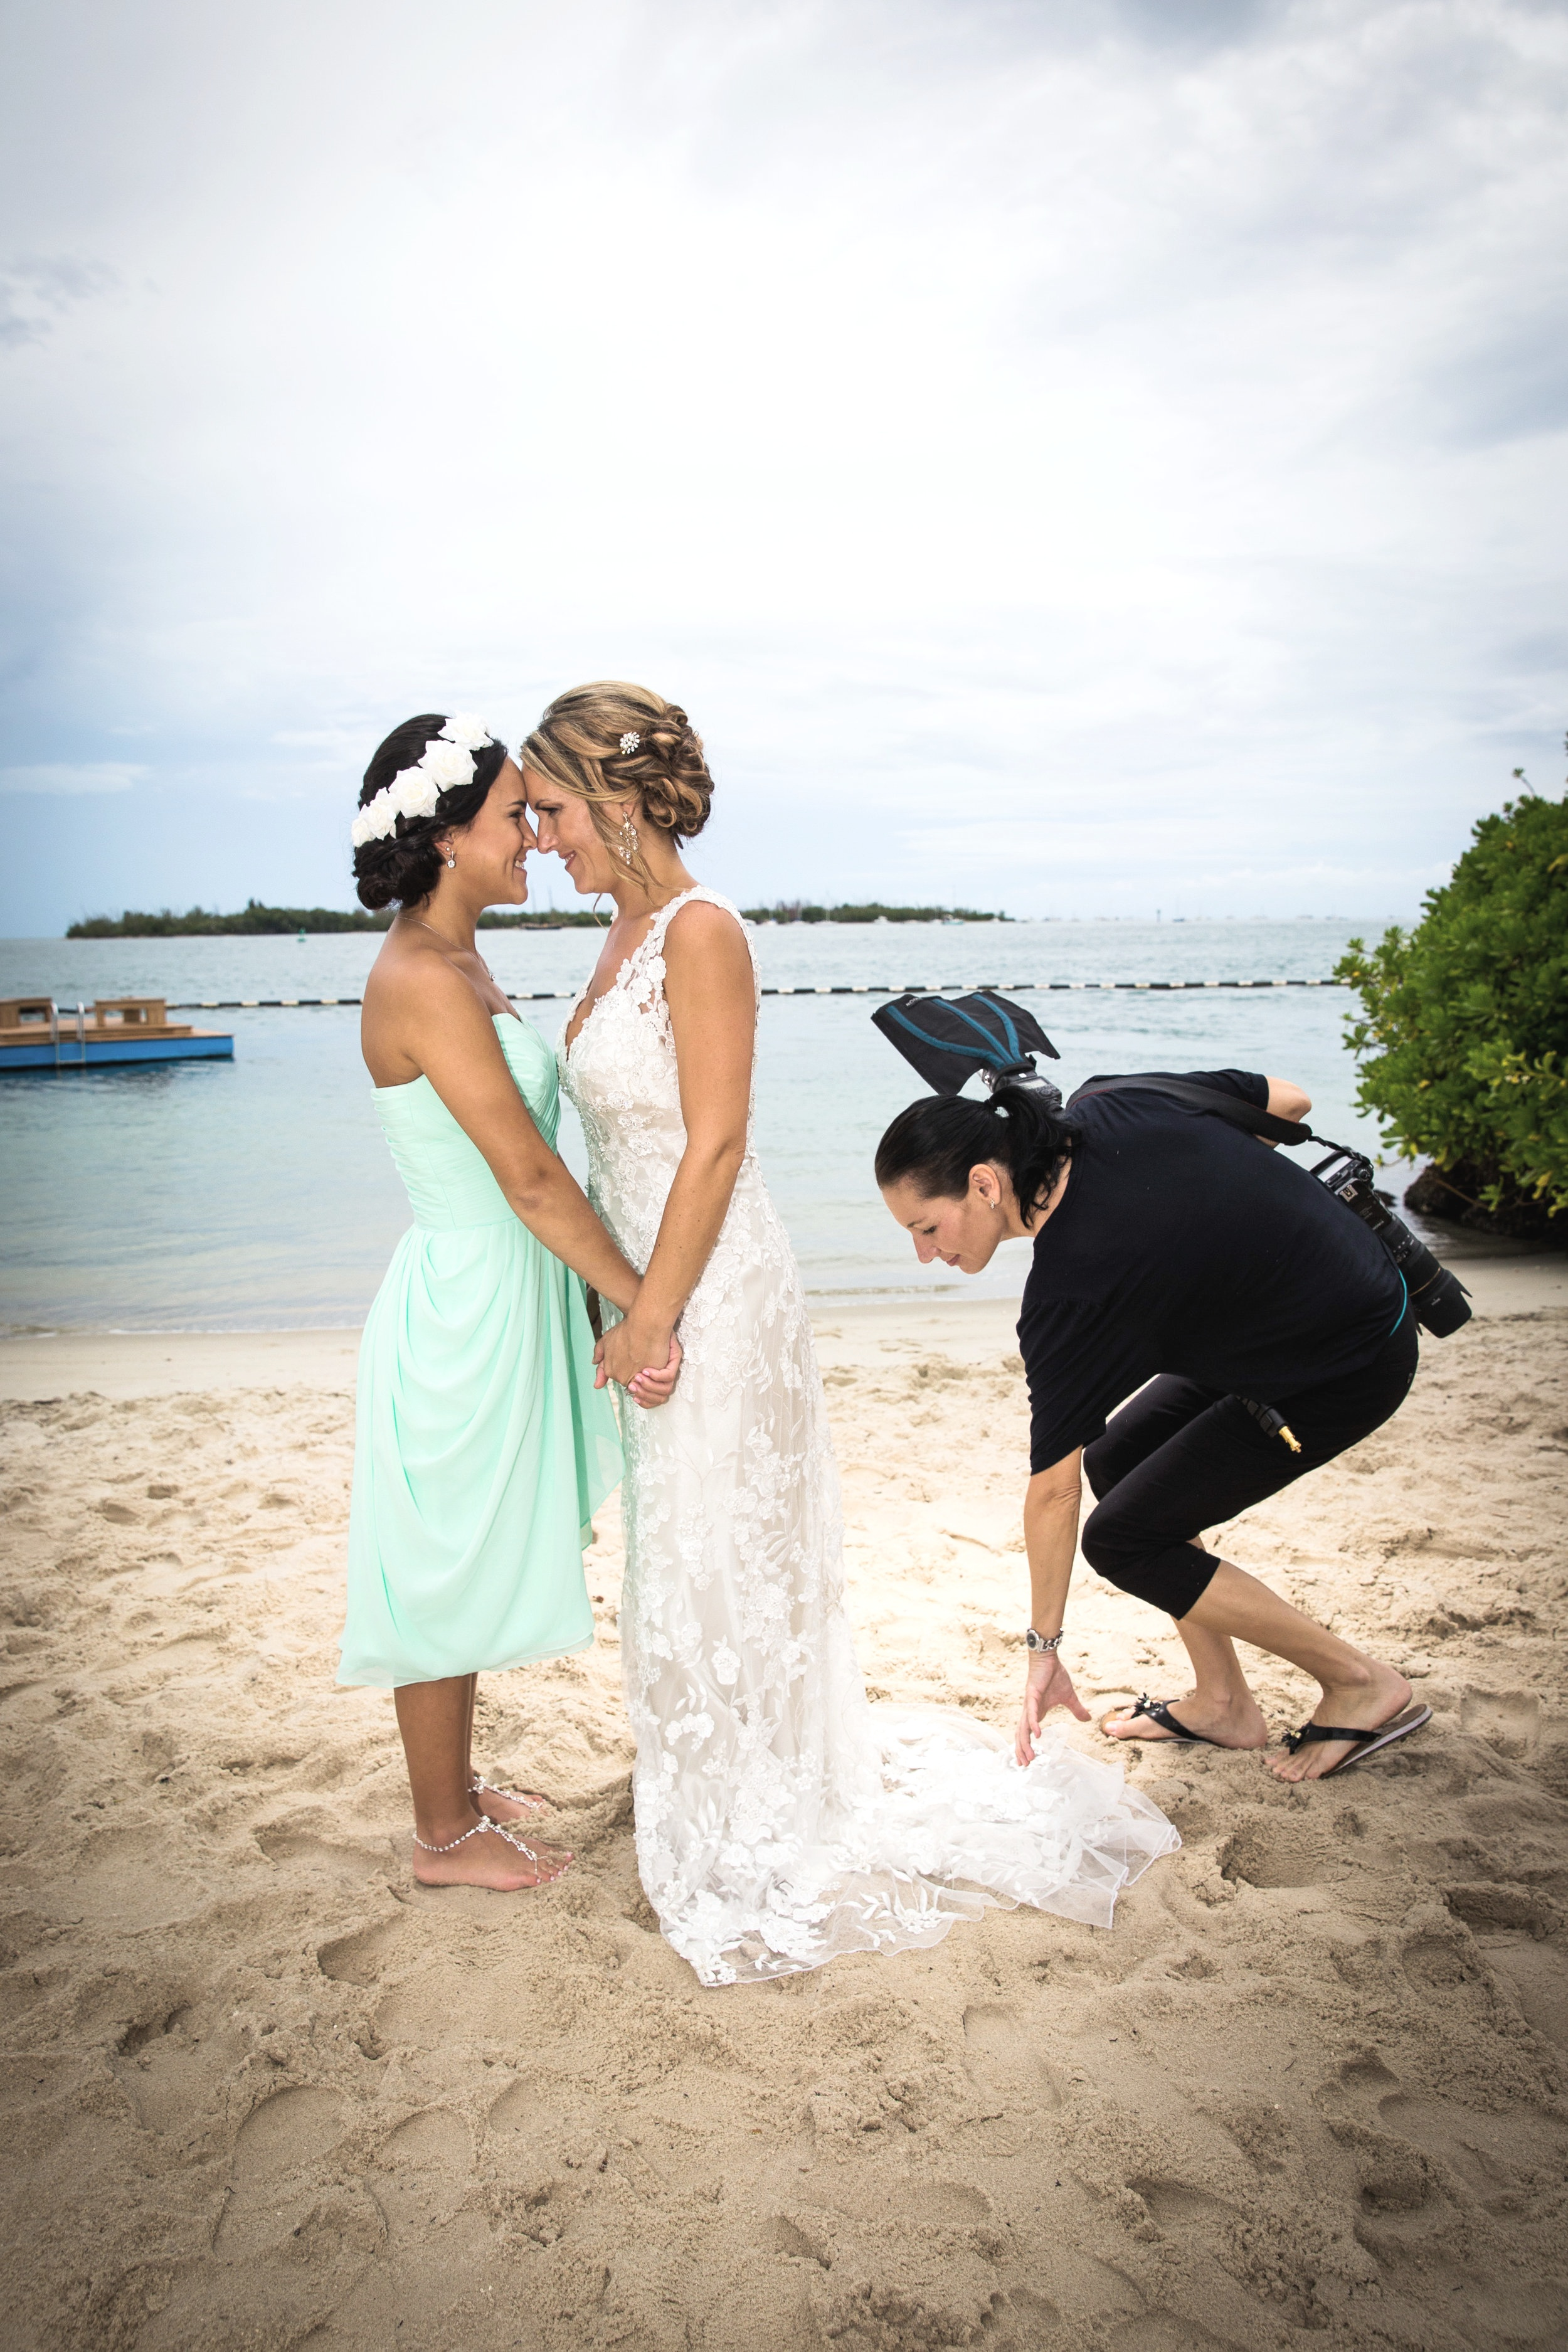 Photography Assistant Spreading out the train of the dress on a Key West wedding day.jpg